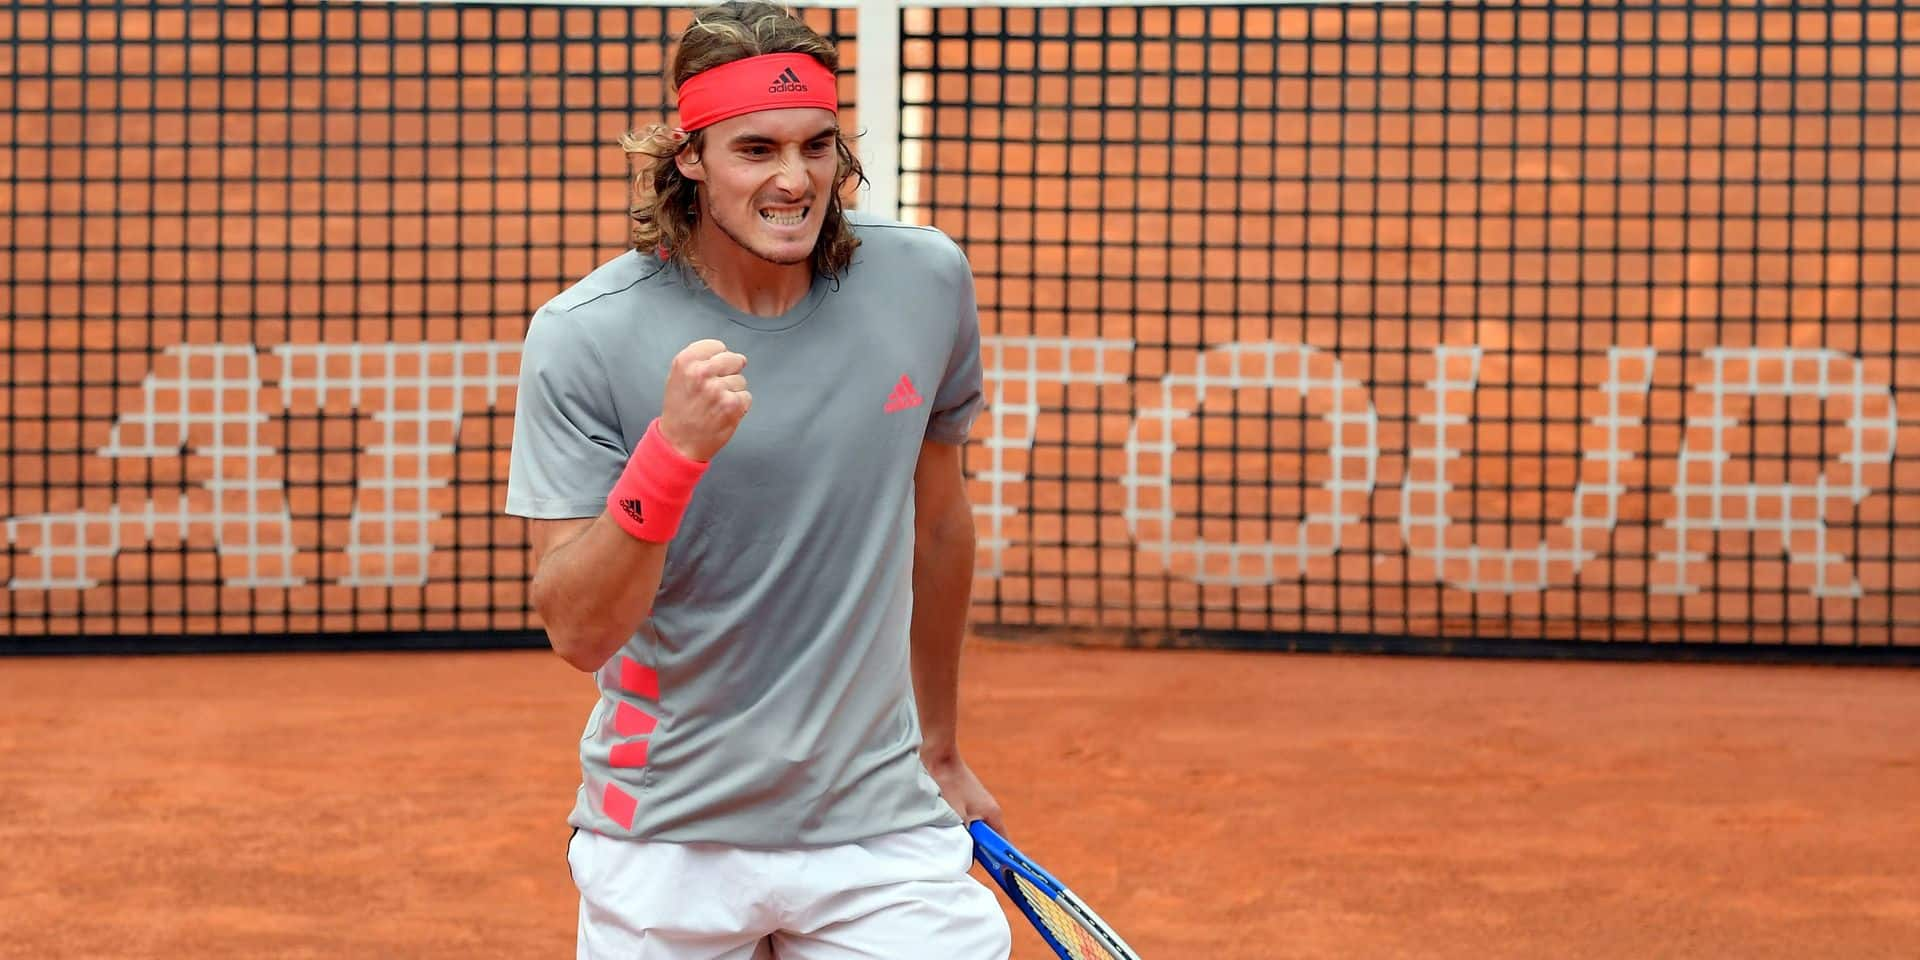 Greece's Stefanos Tsitsipas reacts after a point against Rafael Nadal of Spain during their ATP Masters tournament semi-final men's singles tennis match at the Foro Italico in Rome on May 18, 2019. (Photo by Tiziana FABI / AFP)